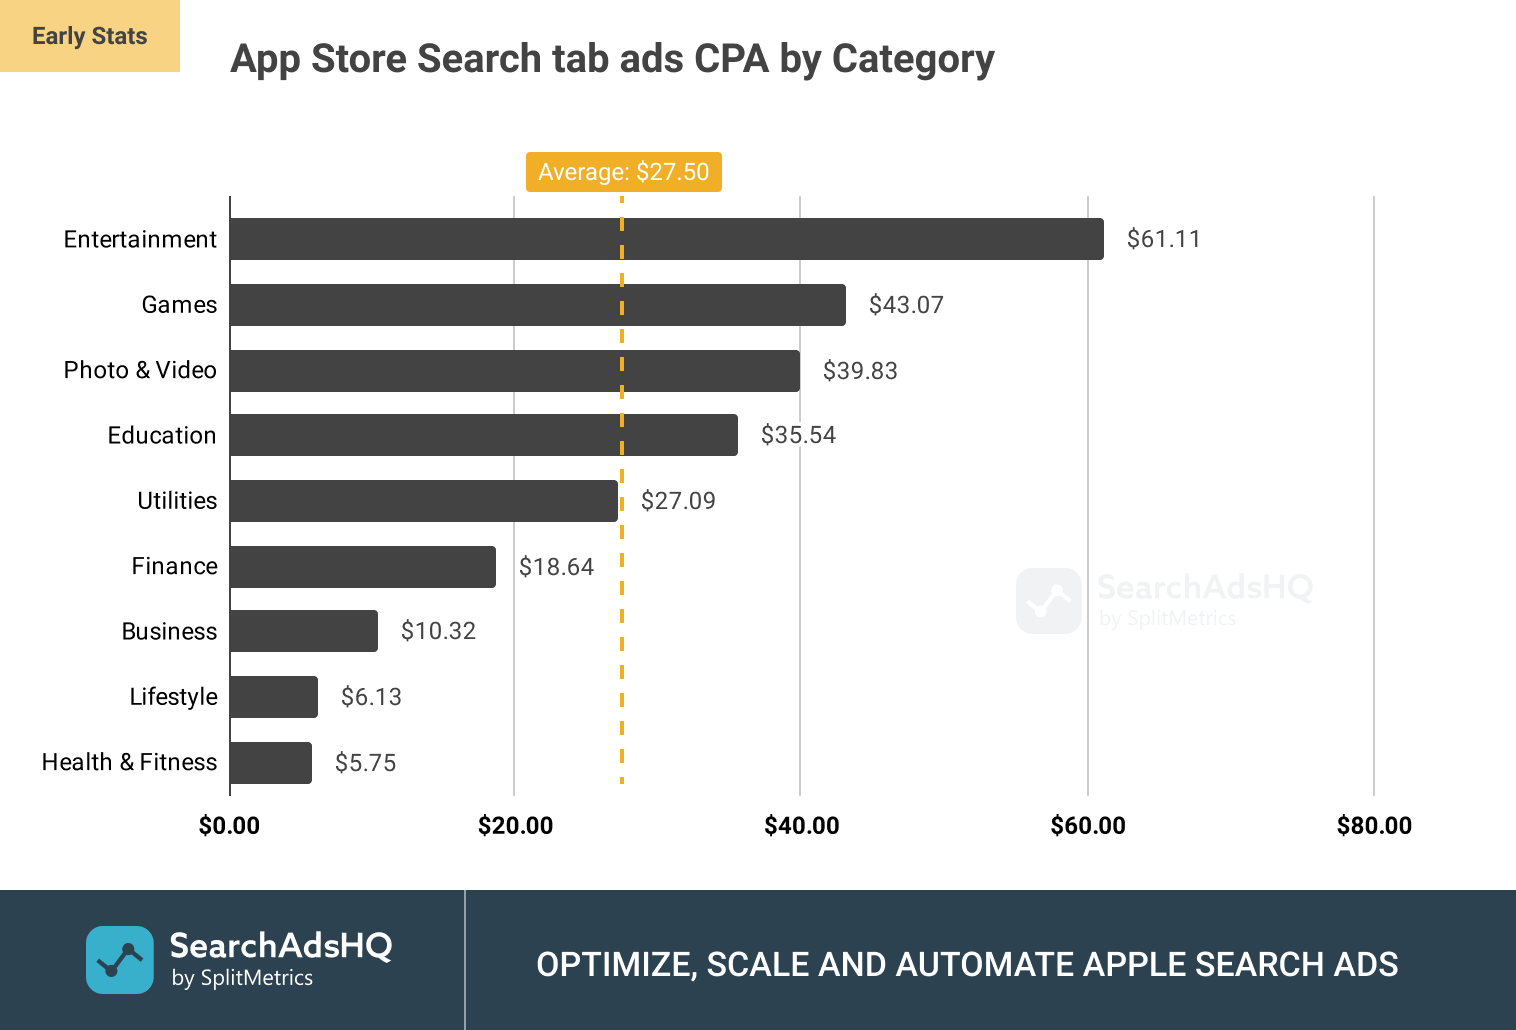 App Store Search tab ads: Average CPA (Cost per Acquisition) by Category